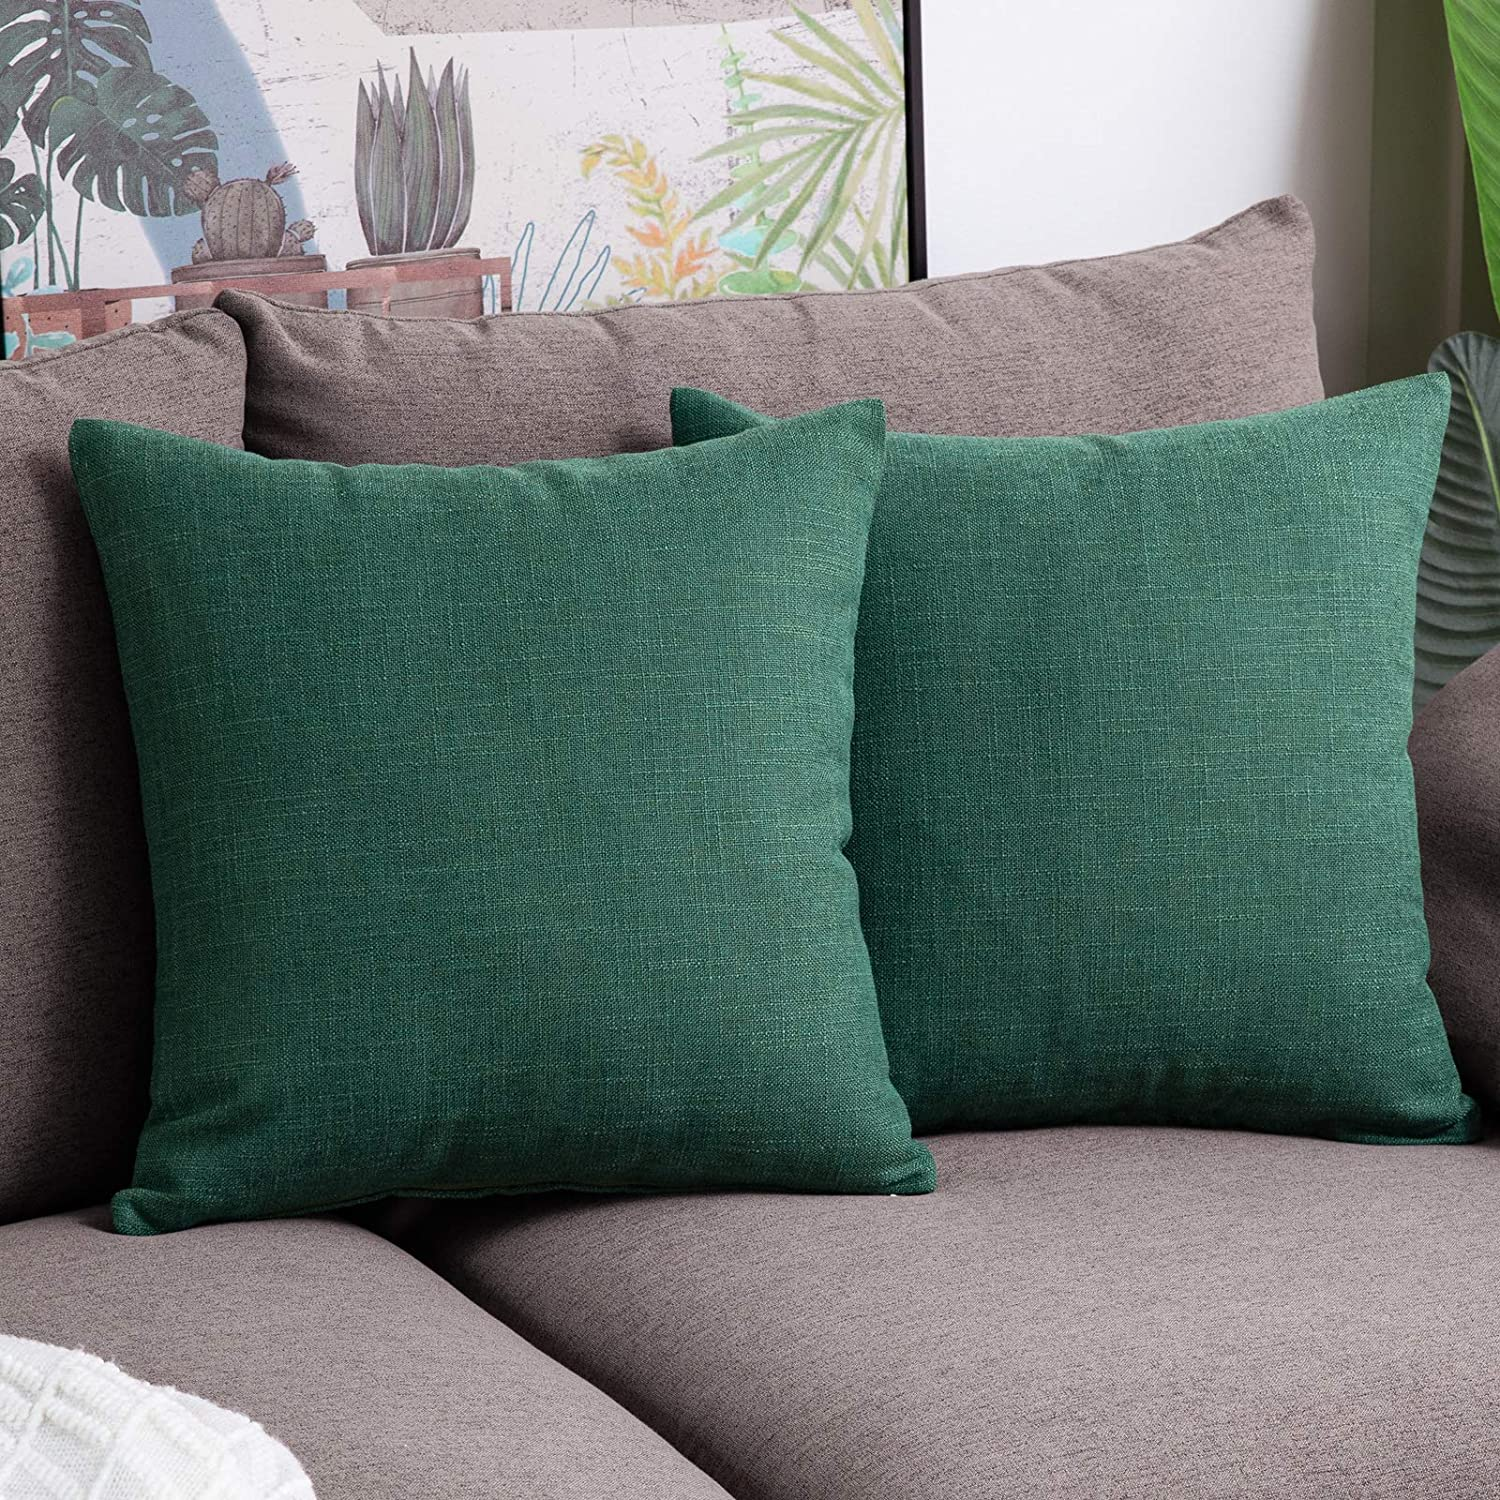 Anickal Christmas Green Pillow Covers 18x18 inch for Christmas Decor Set of 2 Farmhouse Rustic Xmas Decorative Throw Pillow Covers Square Cushion Case for Sofa Couch Home Decoration